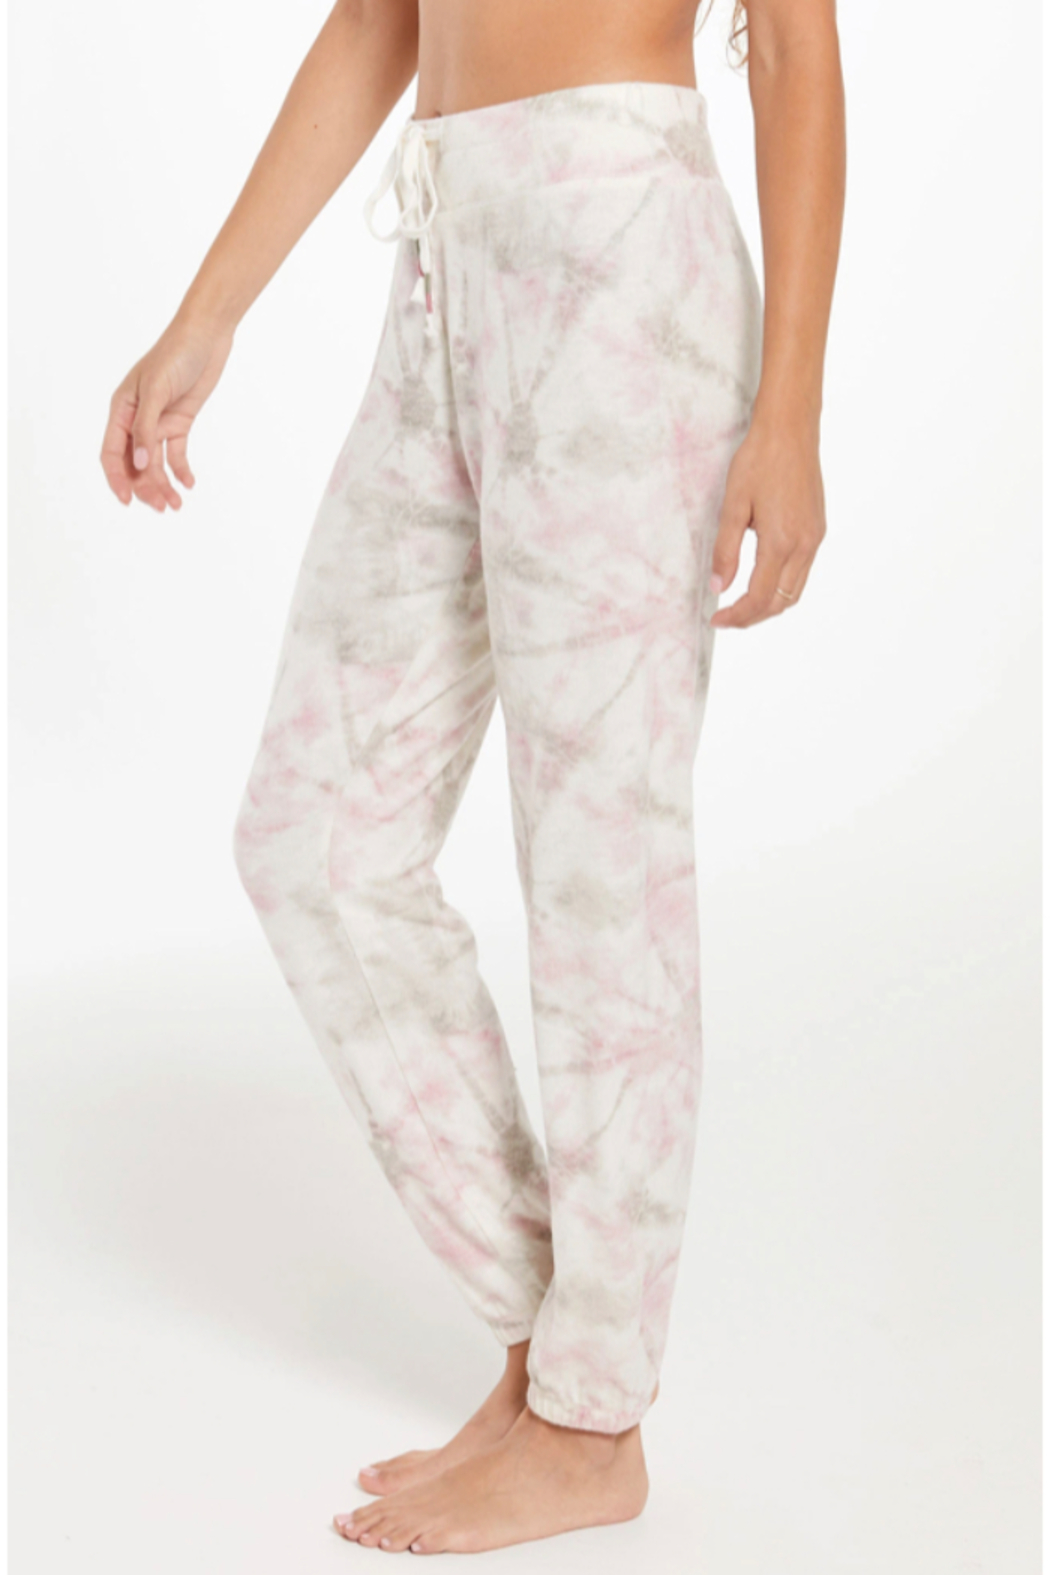 z supply Ava Faded Tie Dye Jogger - Front Full Image